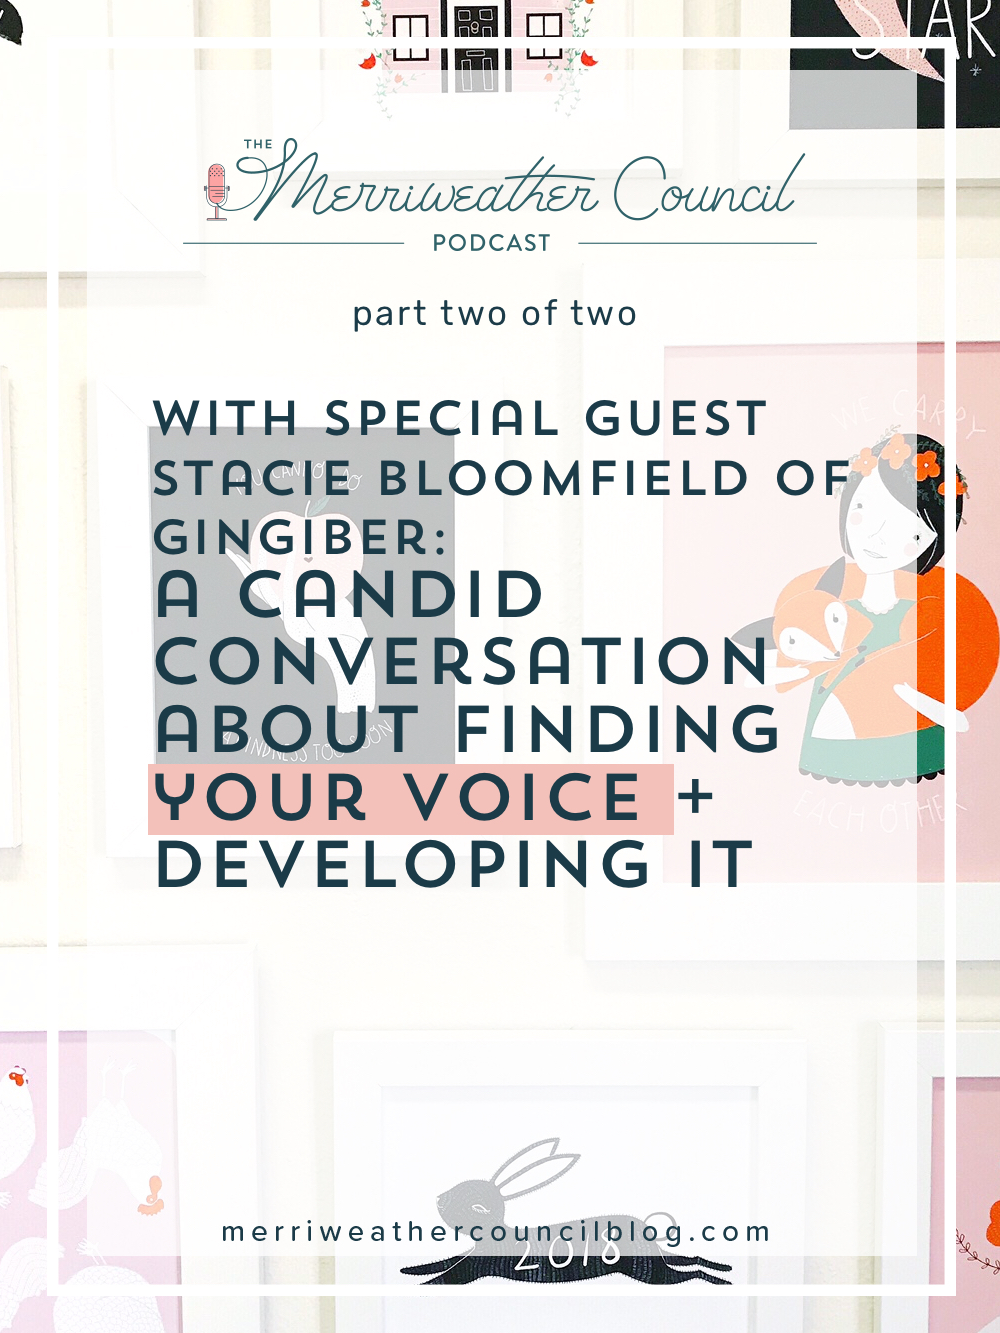 Finding your voice with Stacie Bloomfield.